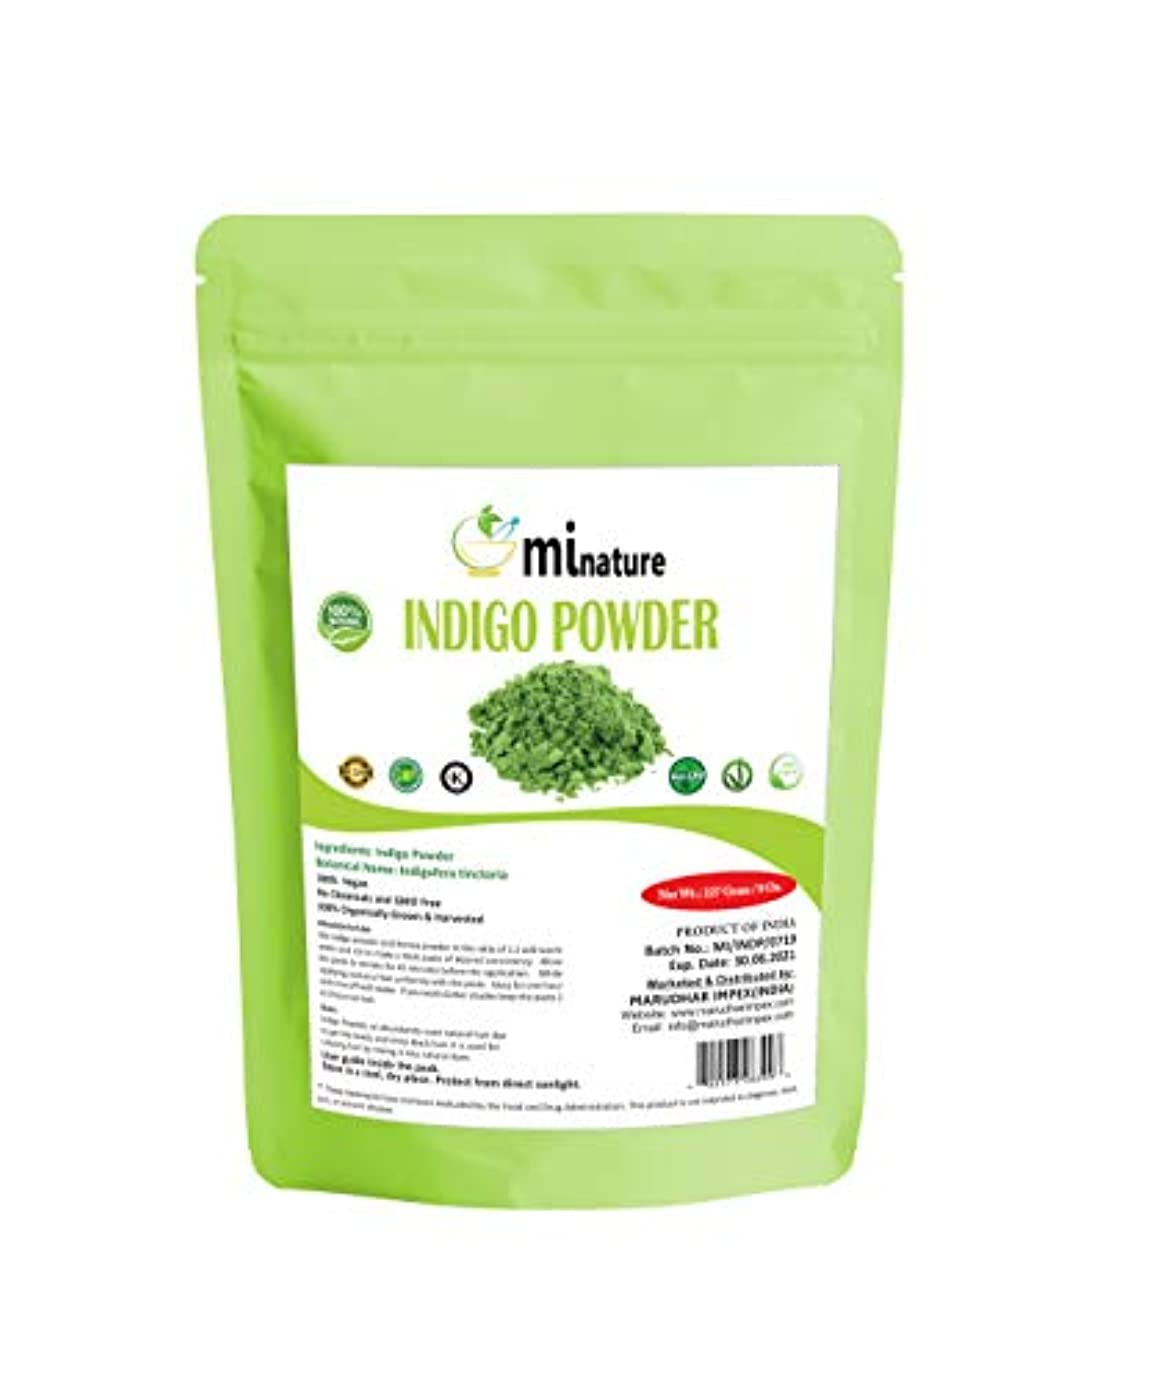 対称発掘する接尾辞mi nature Indigo Powder -INDIGOFERA TINCTORIA ,(100% NATURAL , ORGANICALLY GROWN ) 1/2 LB (227 grams) RESEALABLE BAG